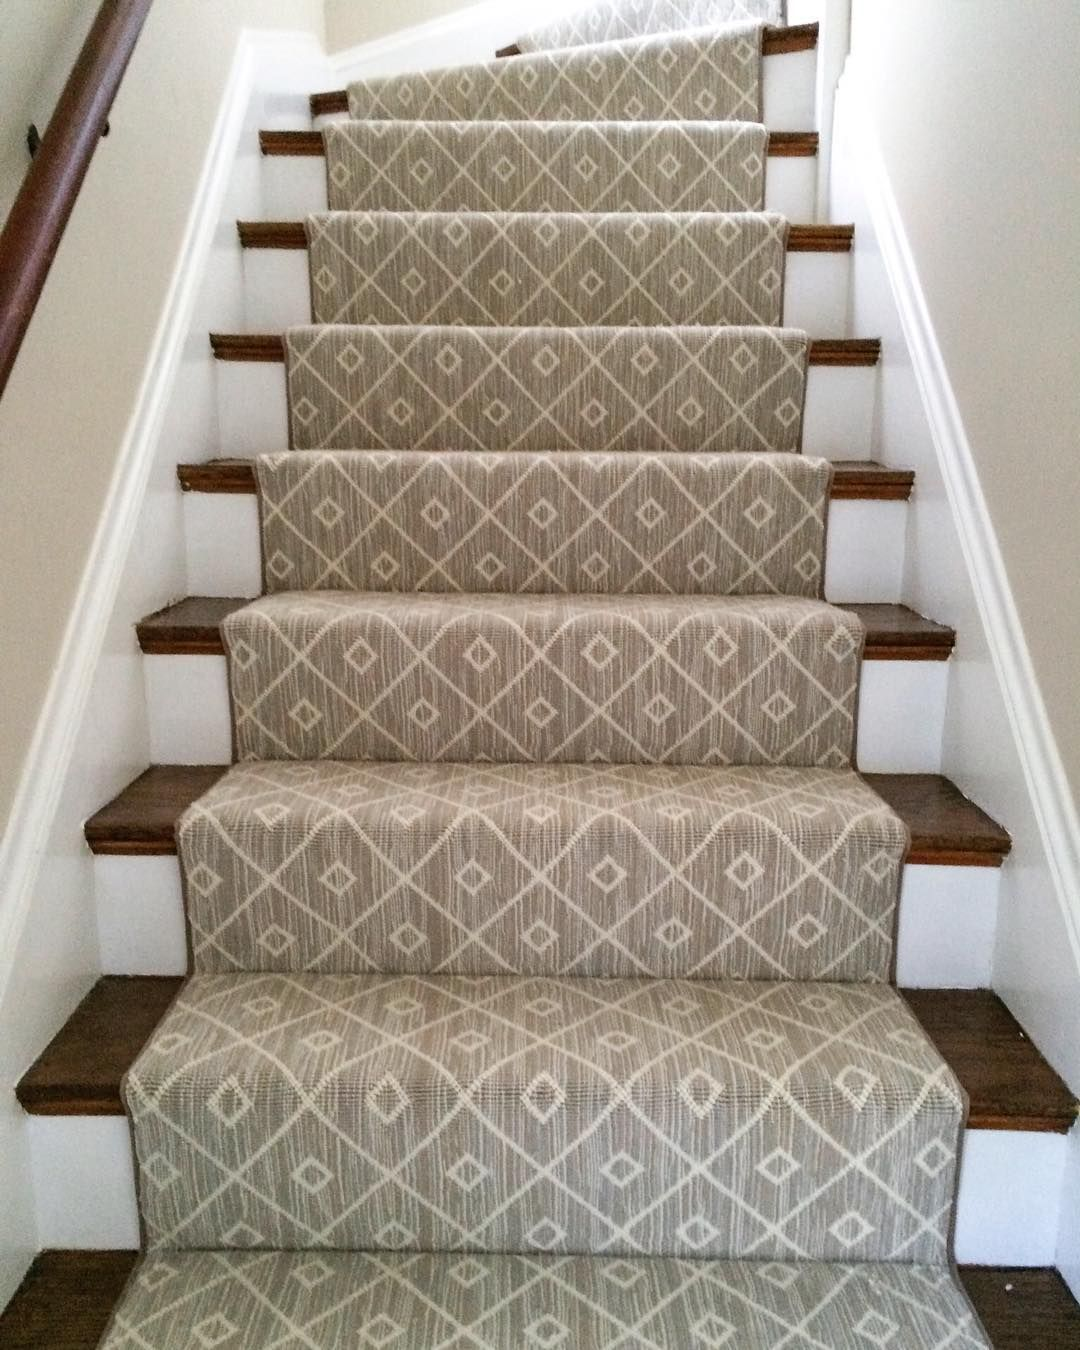 Stairs Rug Runners Mia A Woven 100 Wool Carpet Makes For A Beautiful Stair Runner